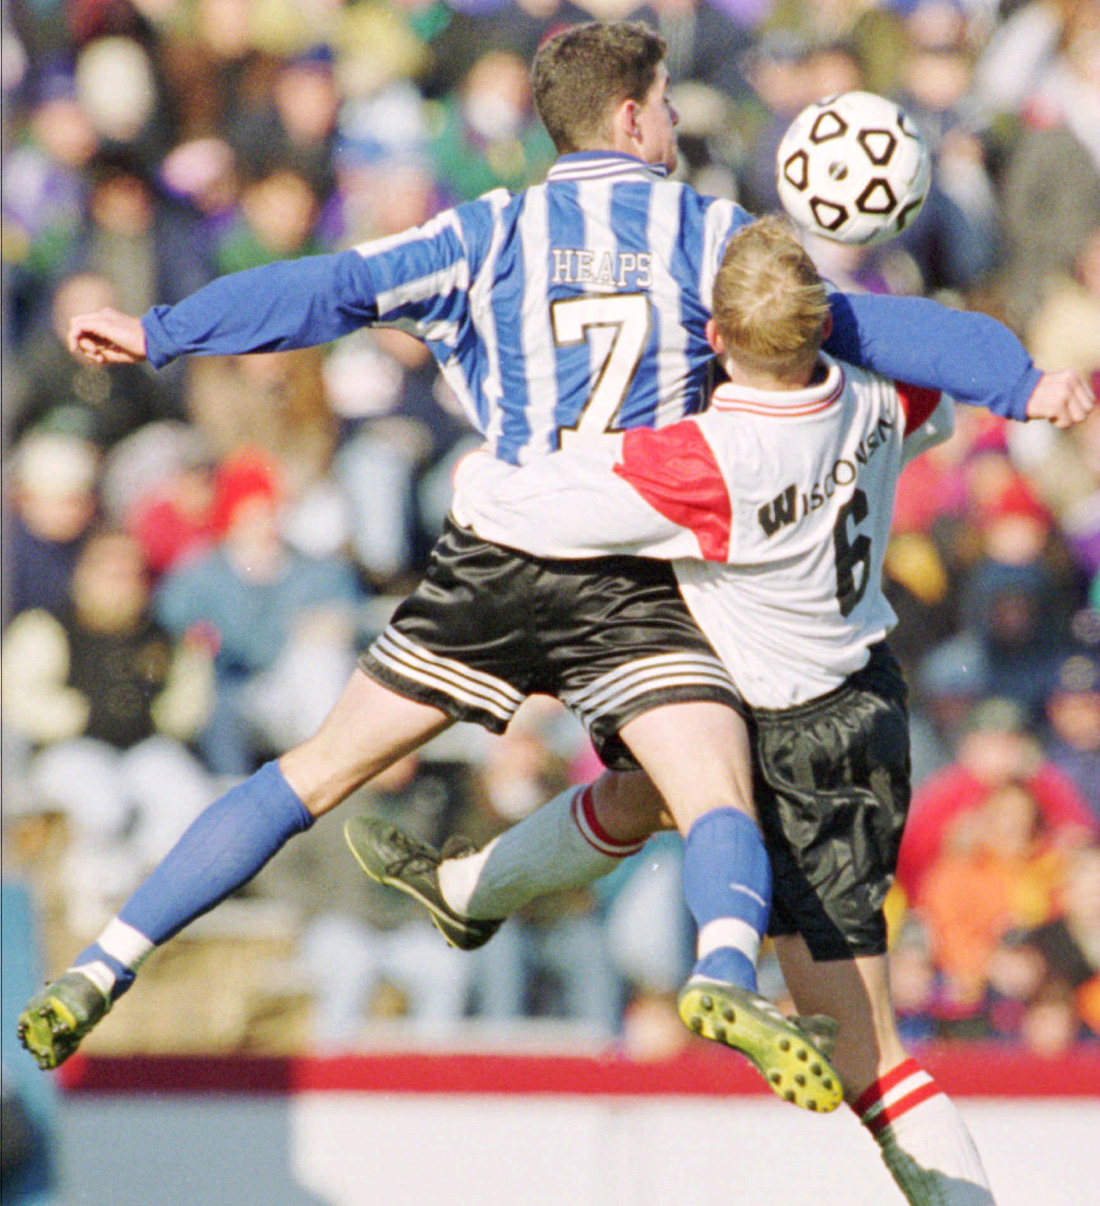 Current New England Revolution manager Jay Heaps leaps through the grab of Wisconsin midfielder Alastair Steel.